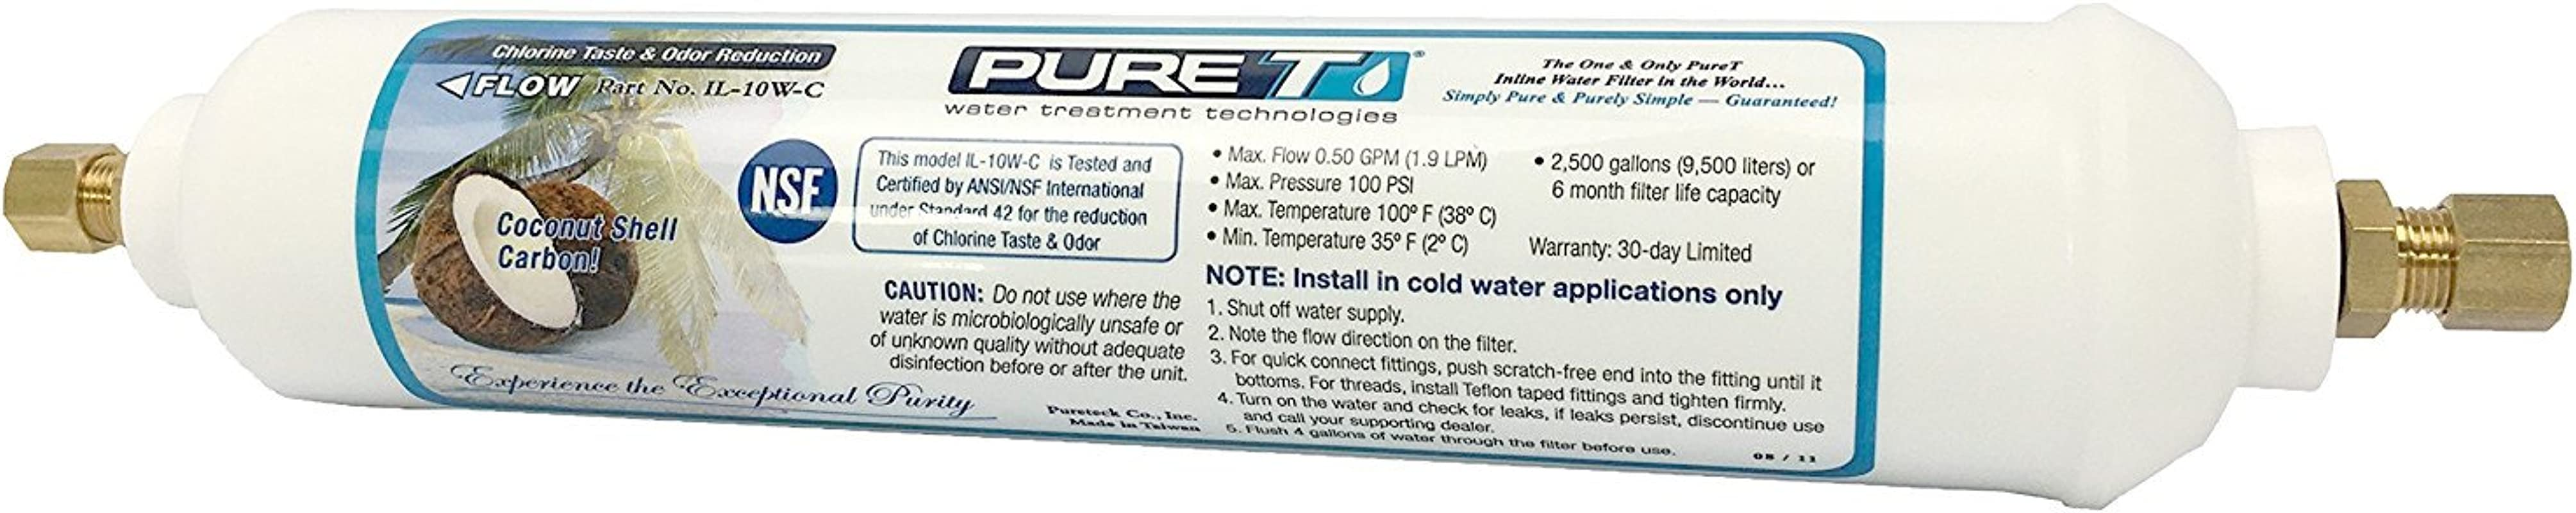 LASCO 37 1821 Ice Maker Inline Filter With 1 4 Inch Compression Connection 2 Inch X 10 Inch